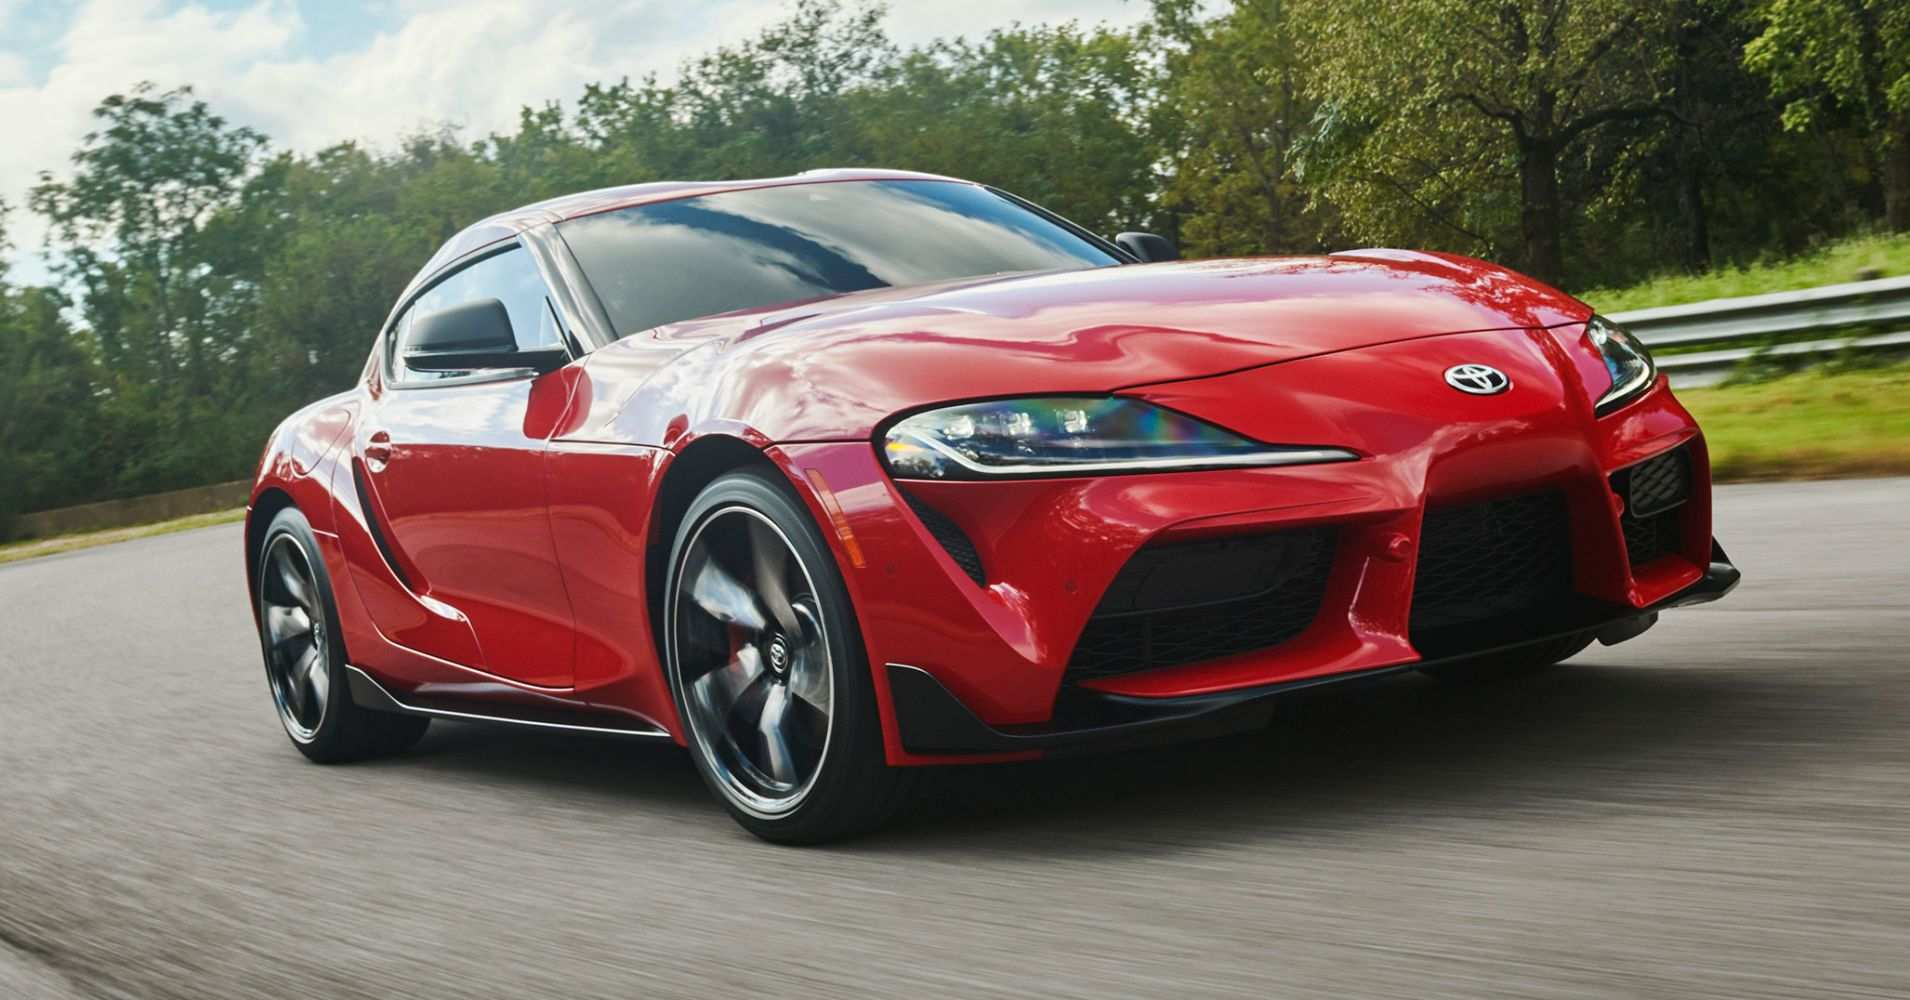 91 Great 2020 Toyota Supra Exterior History with 2020 Toyota Supra Exterior